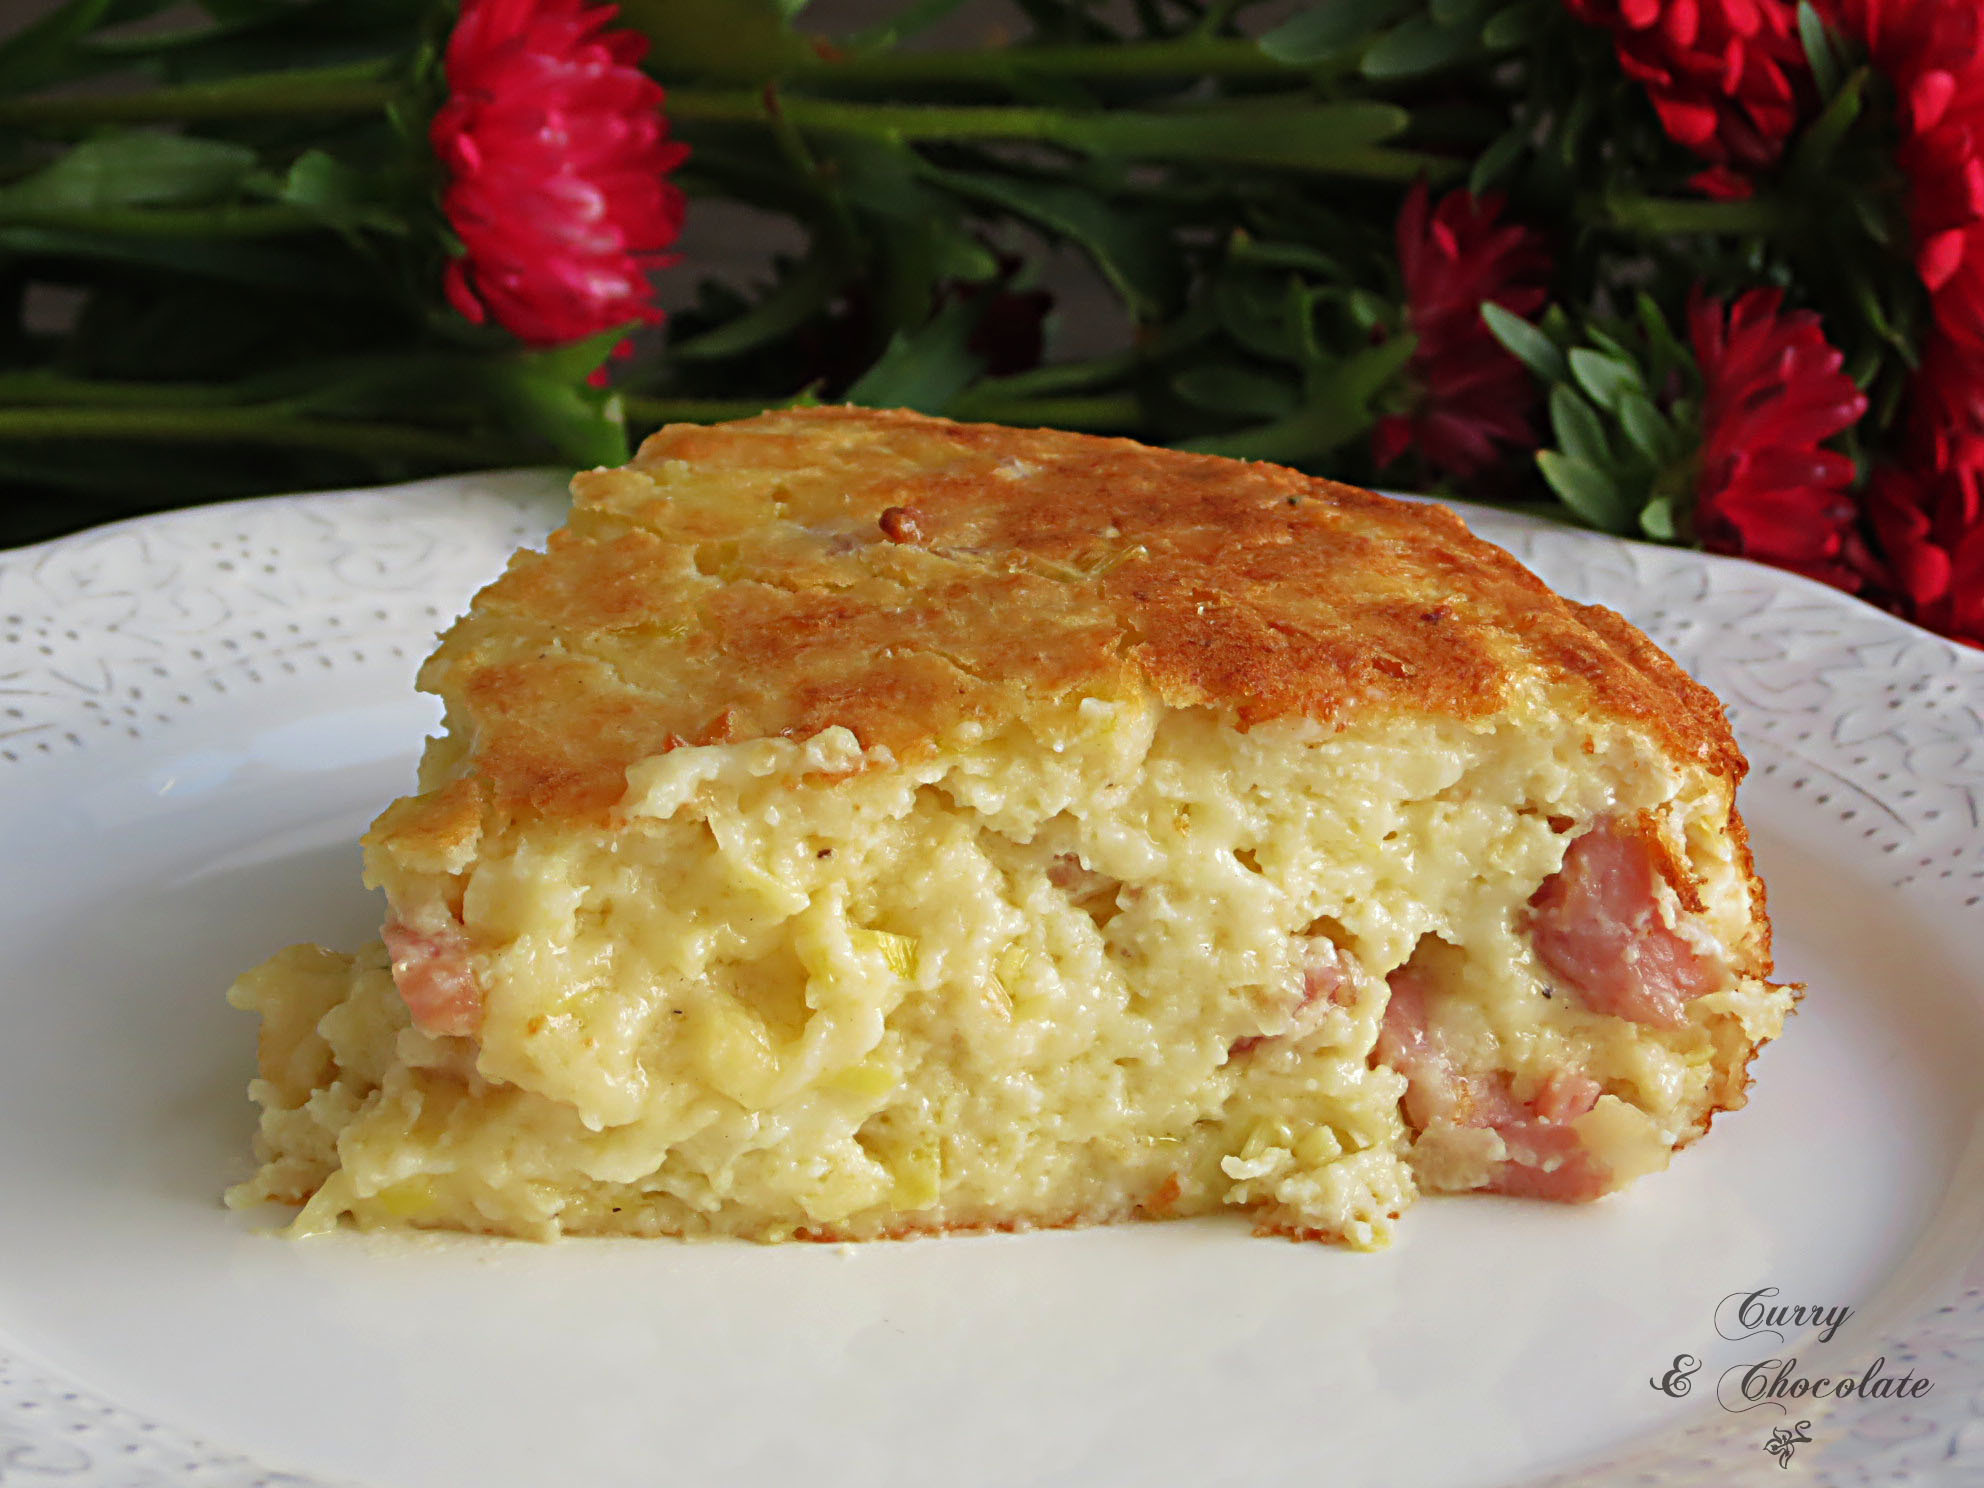 Pastel salado de queso viejo, puerro y bacon – Salty cake with cheese, leek and bacon